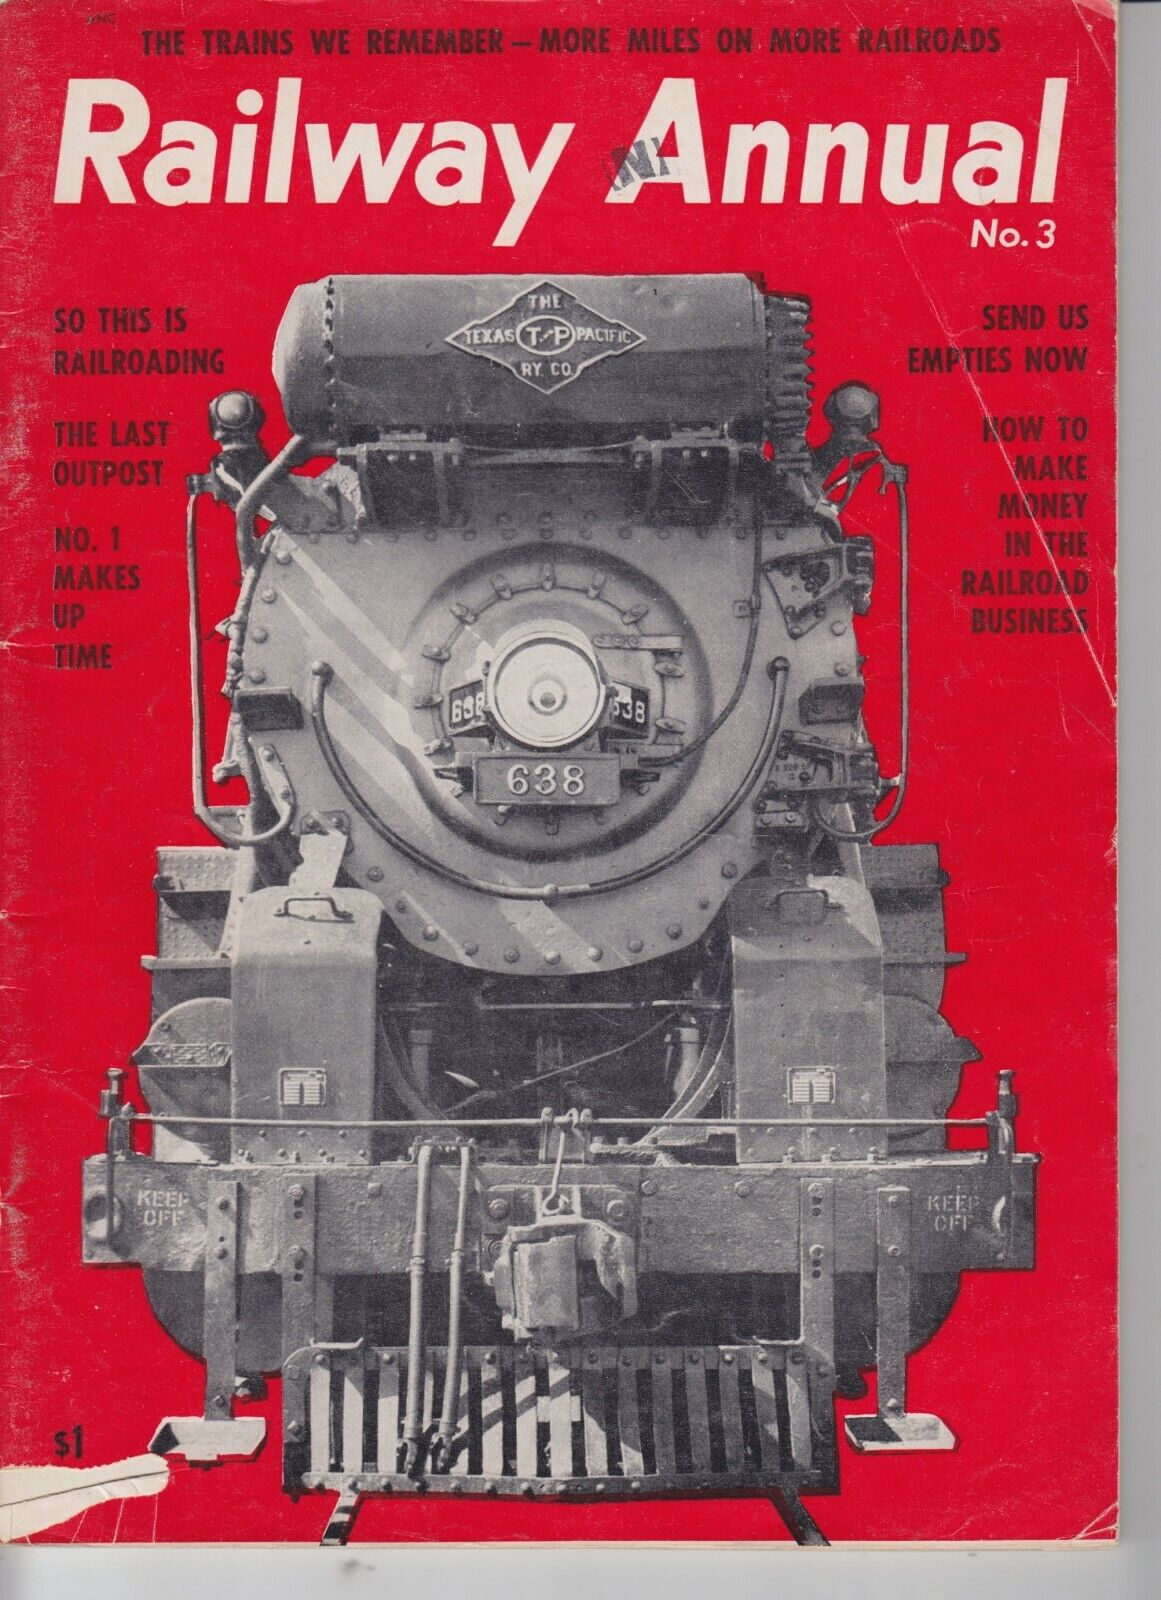 Image 1 - Railway Annual No. 3 The Trains We Remember Kalmbach Publishing 1954